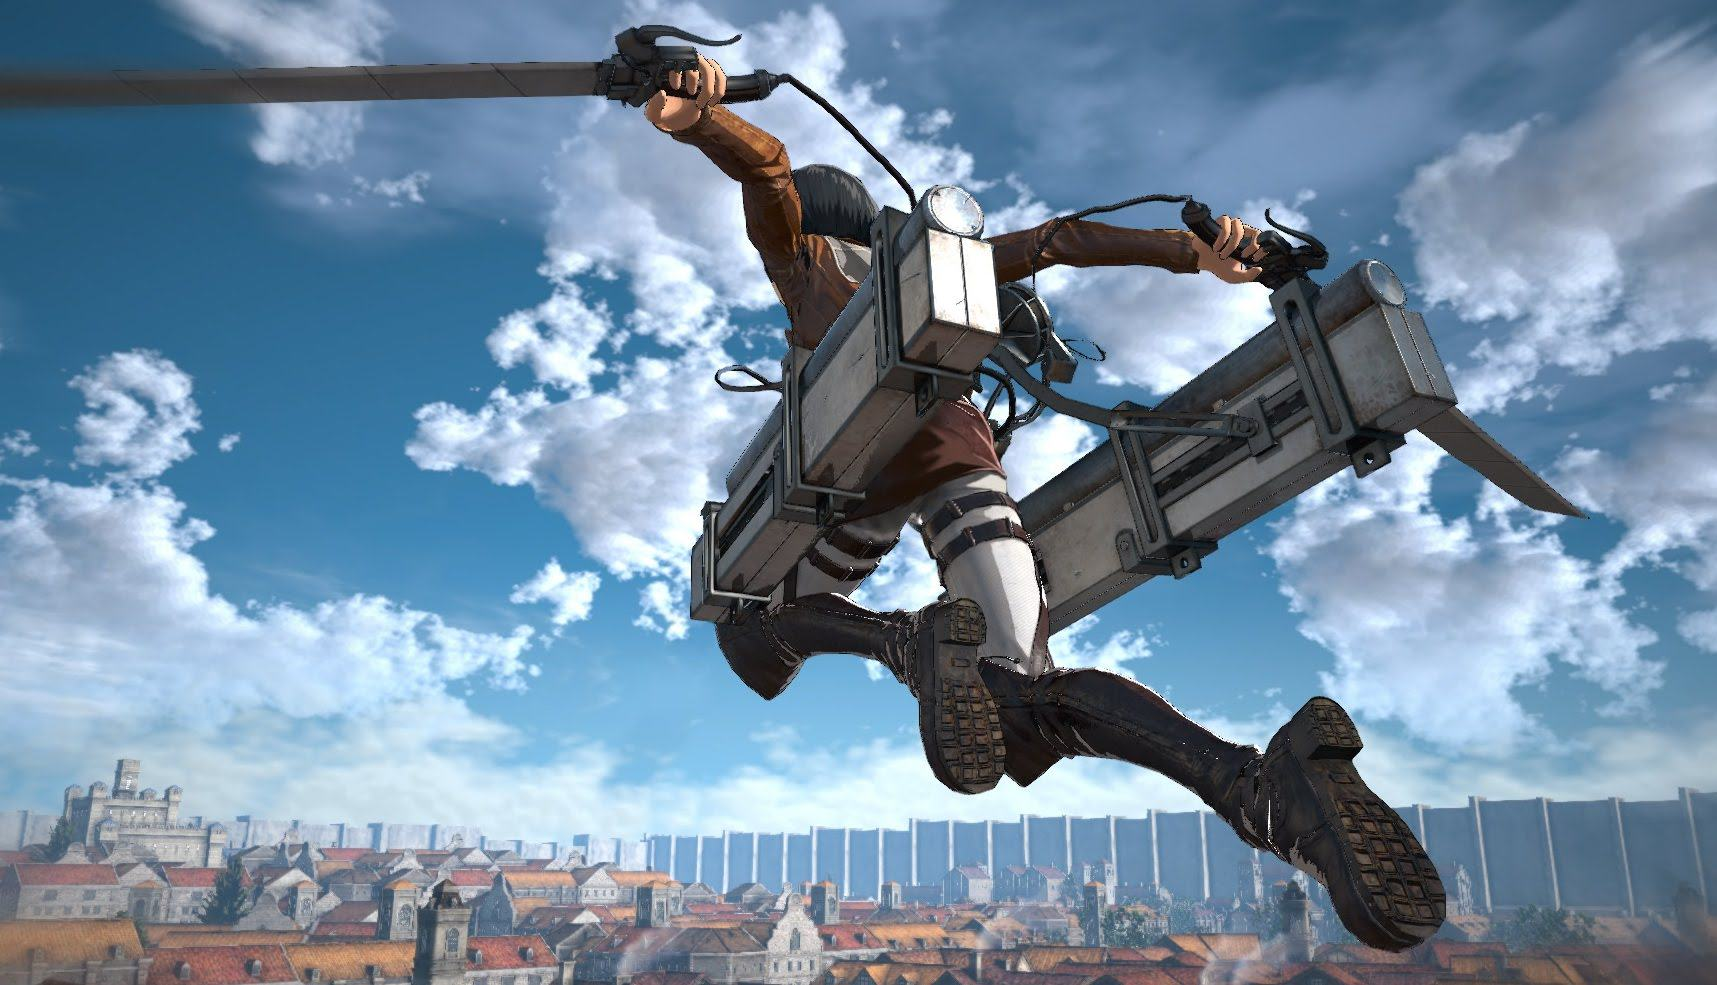 maxresdefault 2 1 New Attack On Titan Trailer Showcases A Ton Of Awesome Gameplay